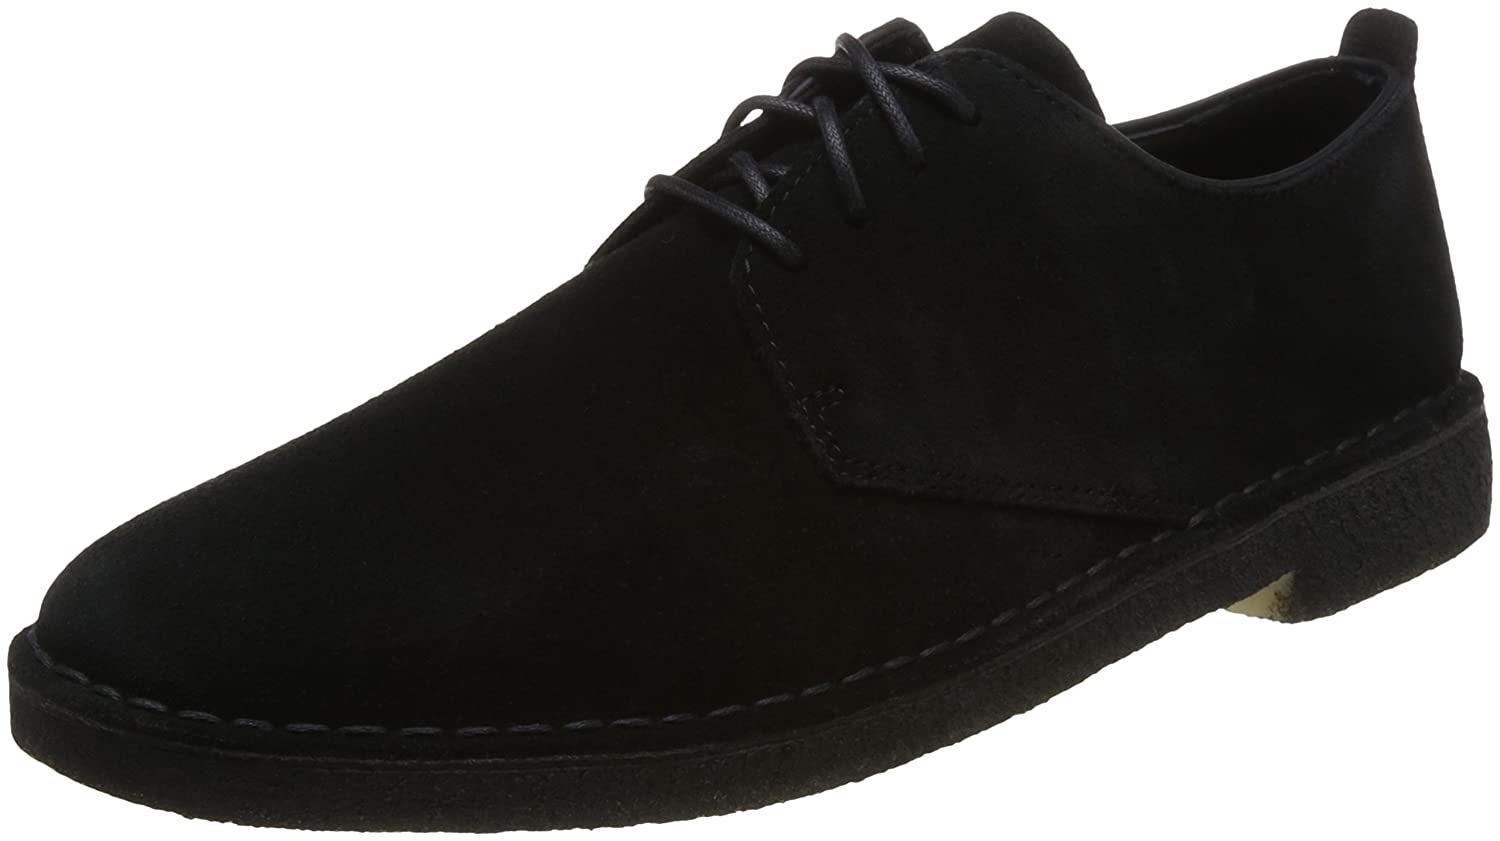 Black Clarks Originals Men's Desert London Derbys